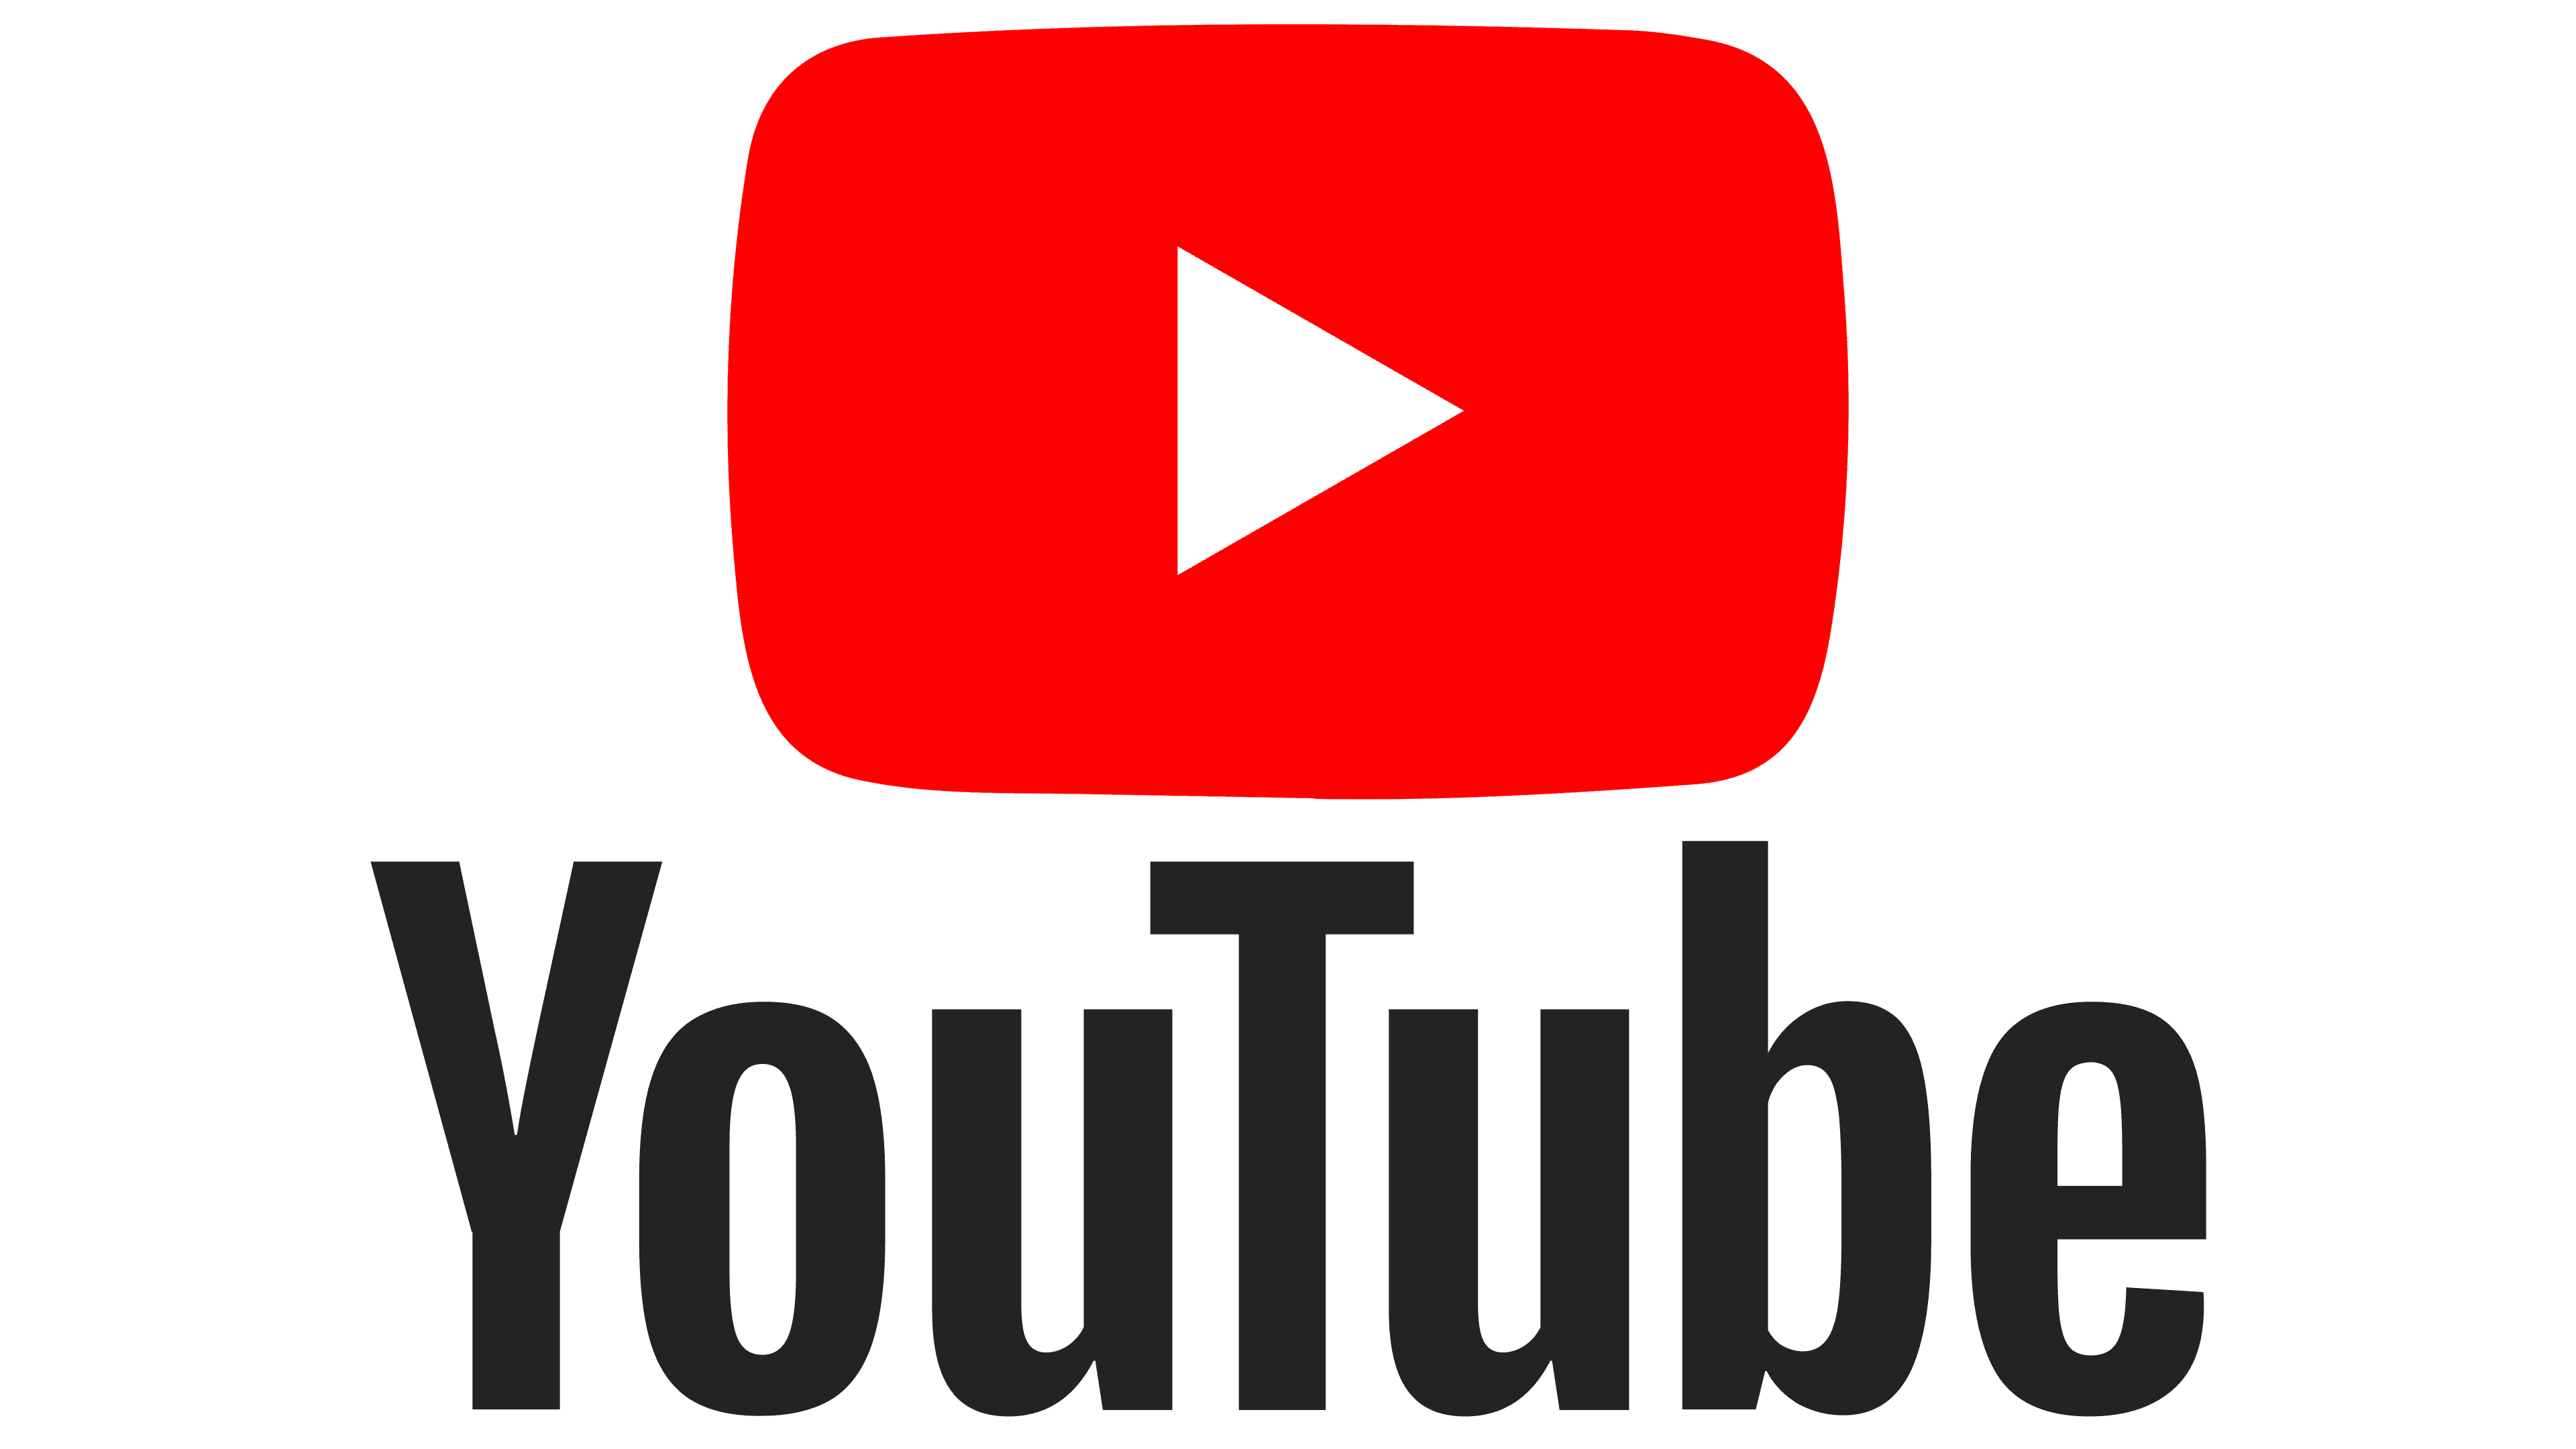 YouTube Logo | The most famous brands and company logos in the world